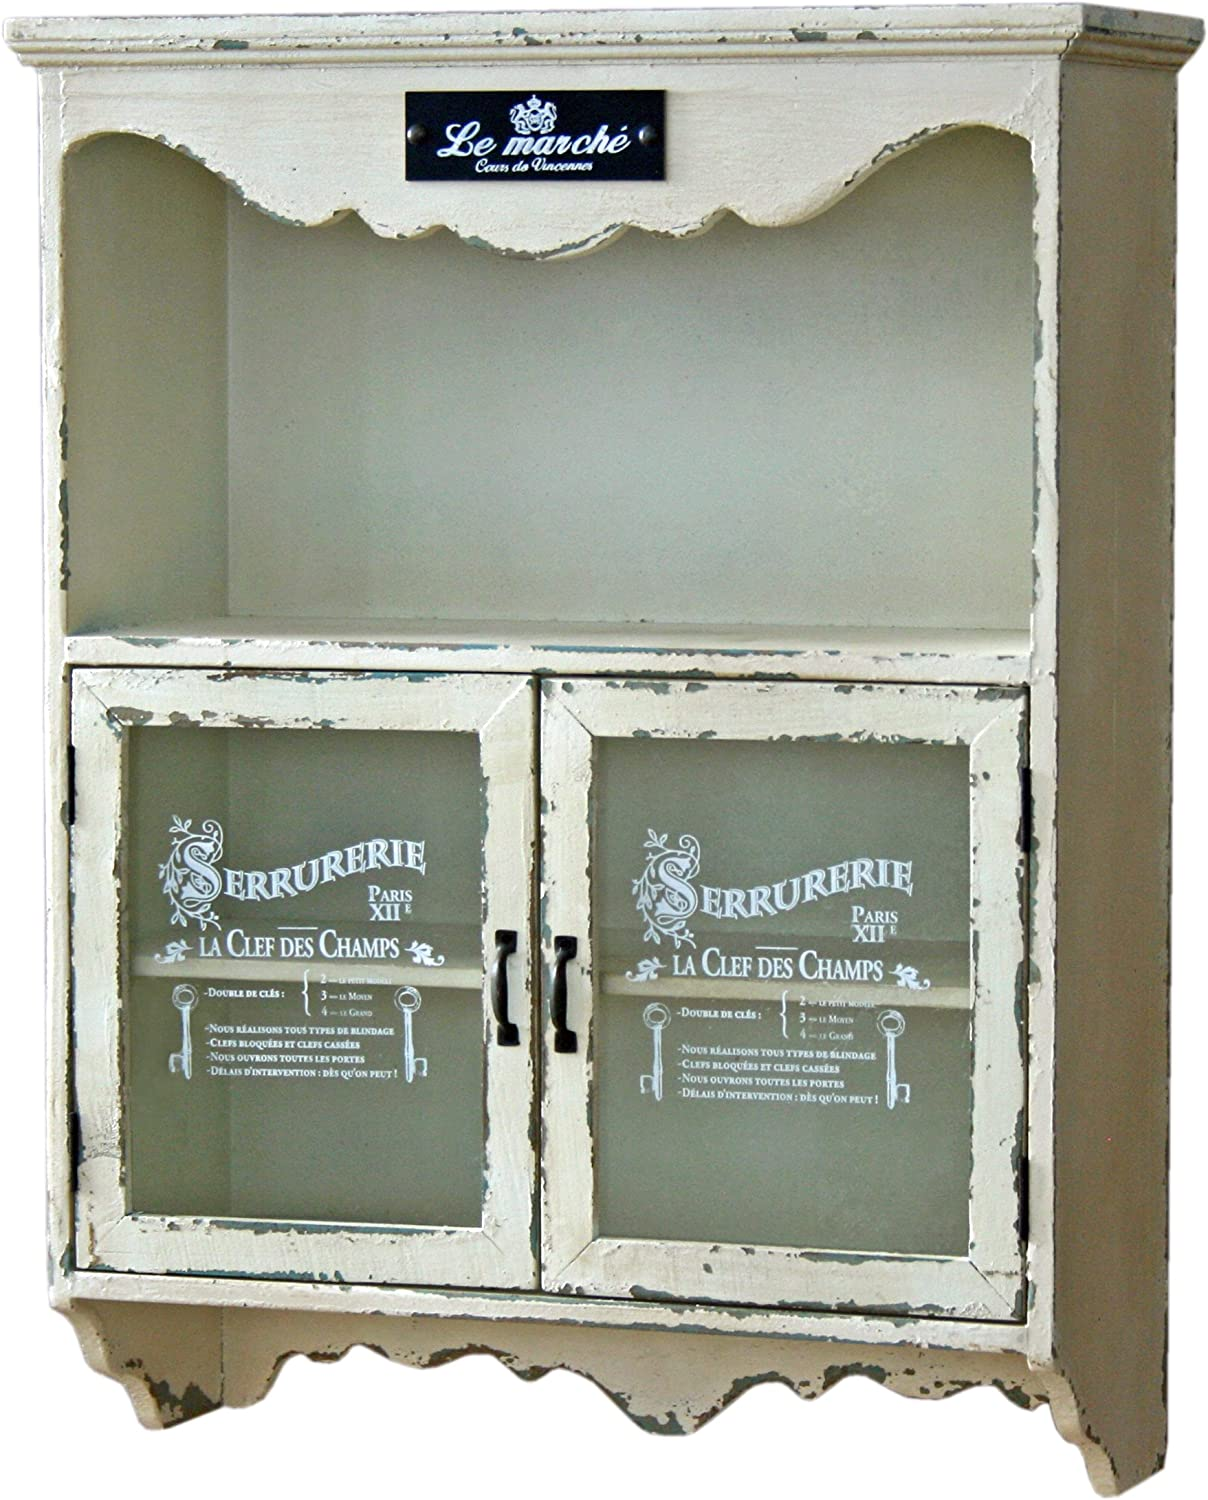 A Lot Of Surprises Montpellier Decor Le Marche 2 Door Cream Glazed Wall Cabinet Distressed Finish Shabby Chic Vintage Kitchen Home With Cheap Price To Get Top Brand Smartmeeting Co Il